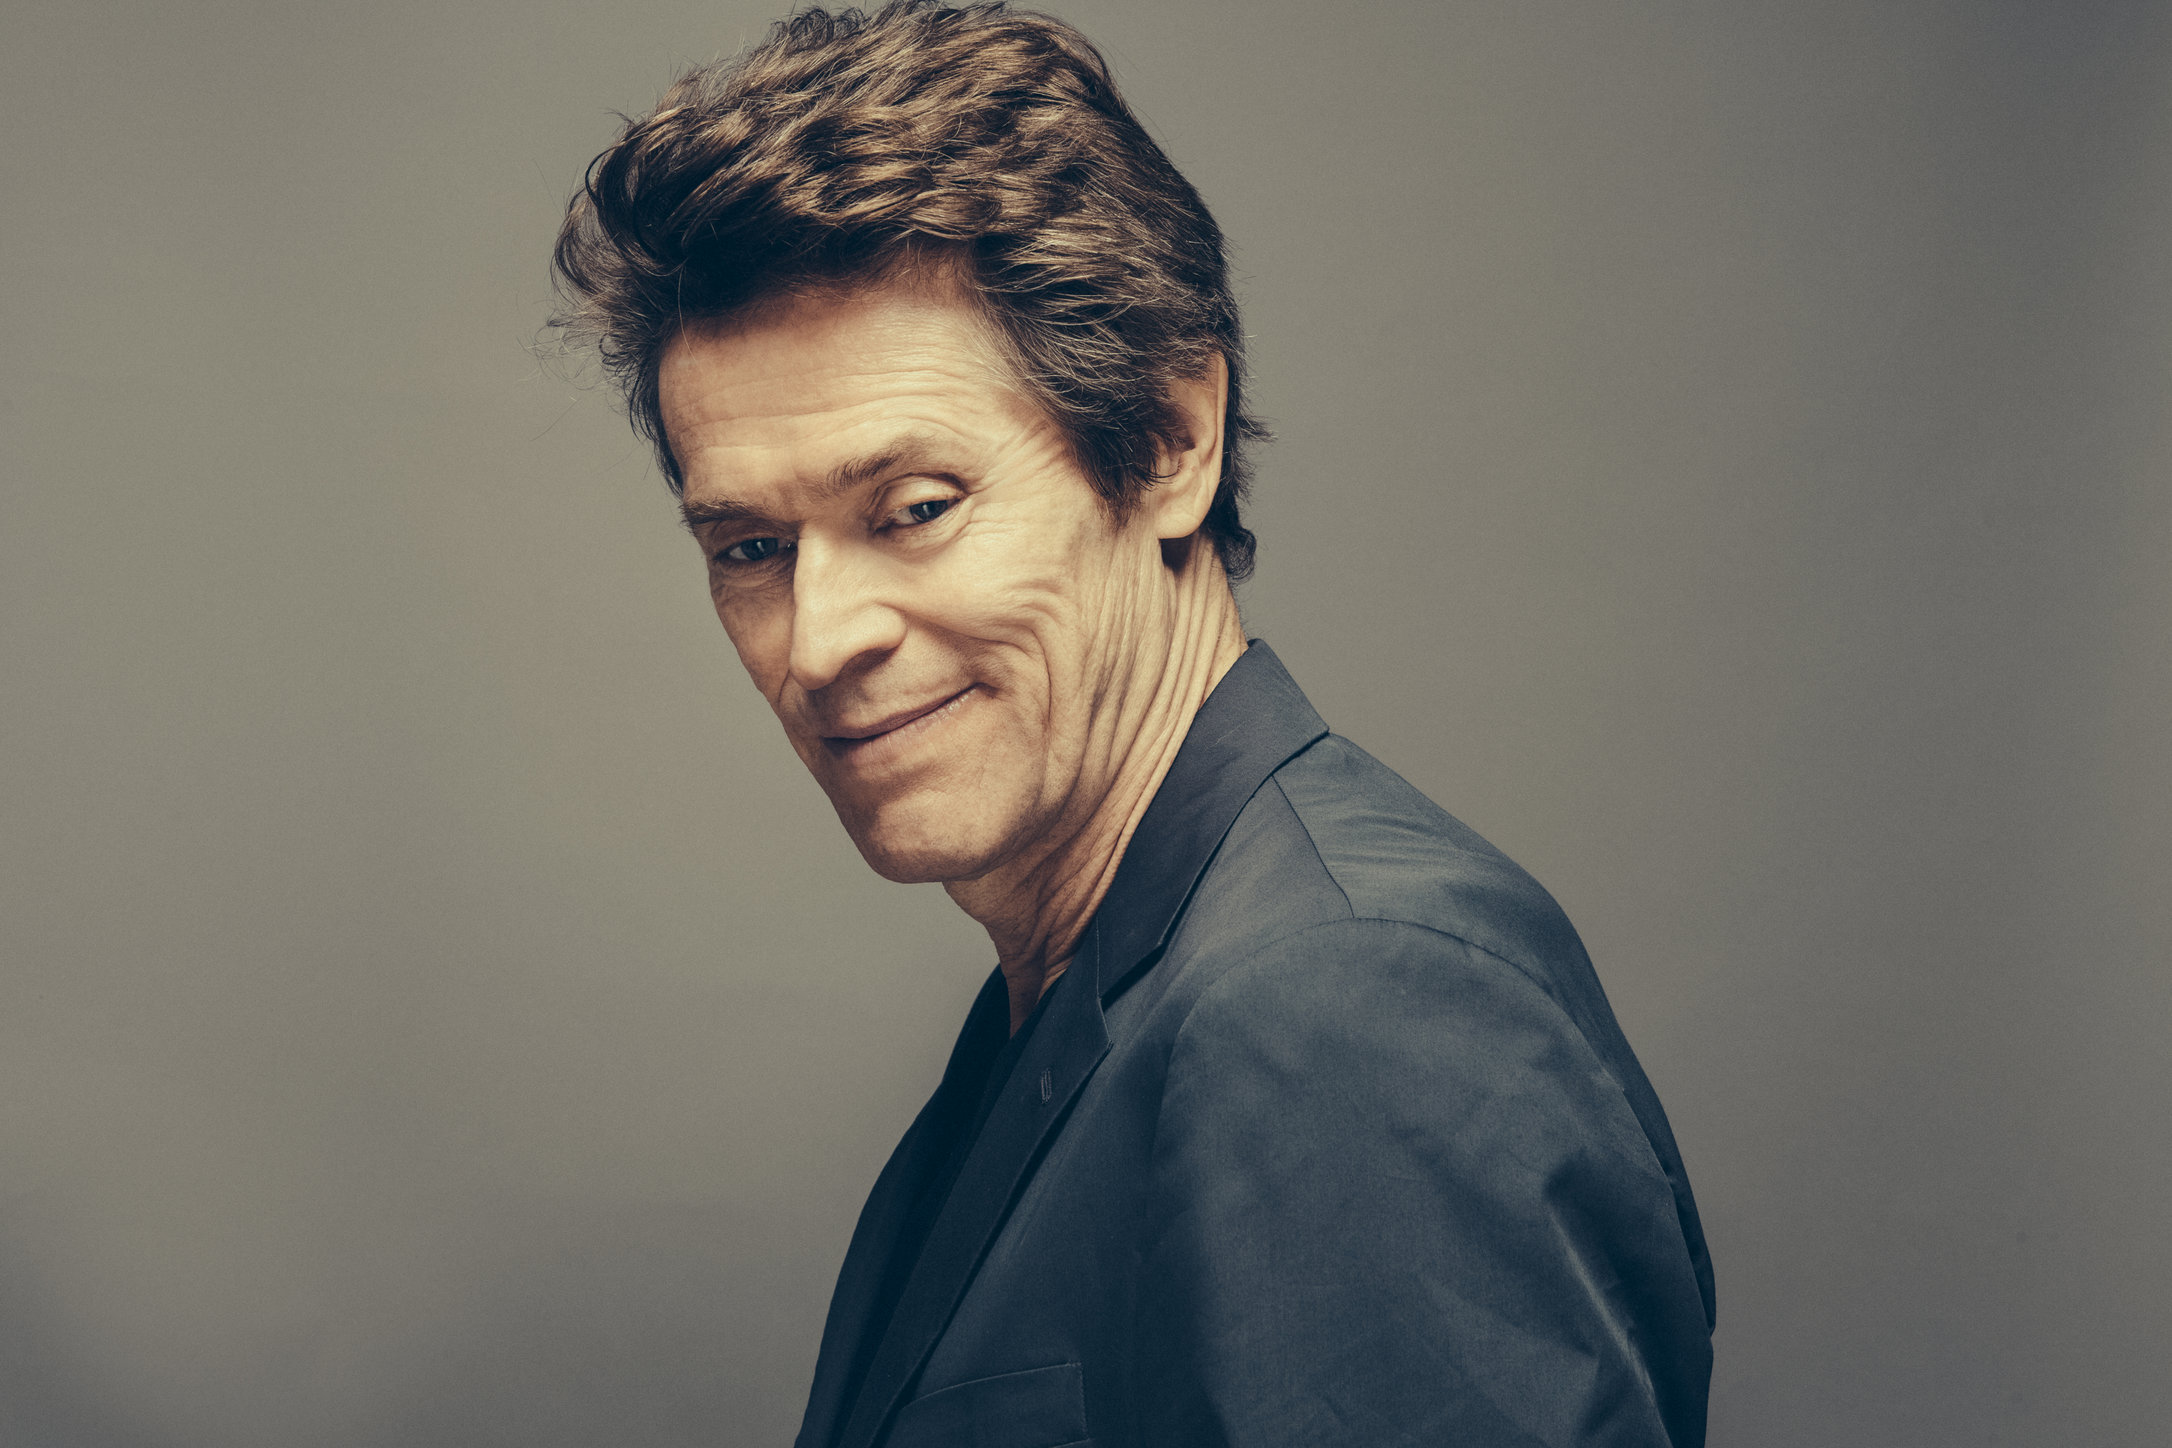 willem dafoe, actor